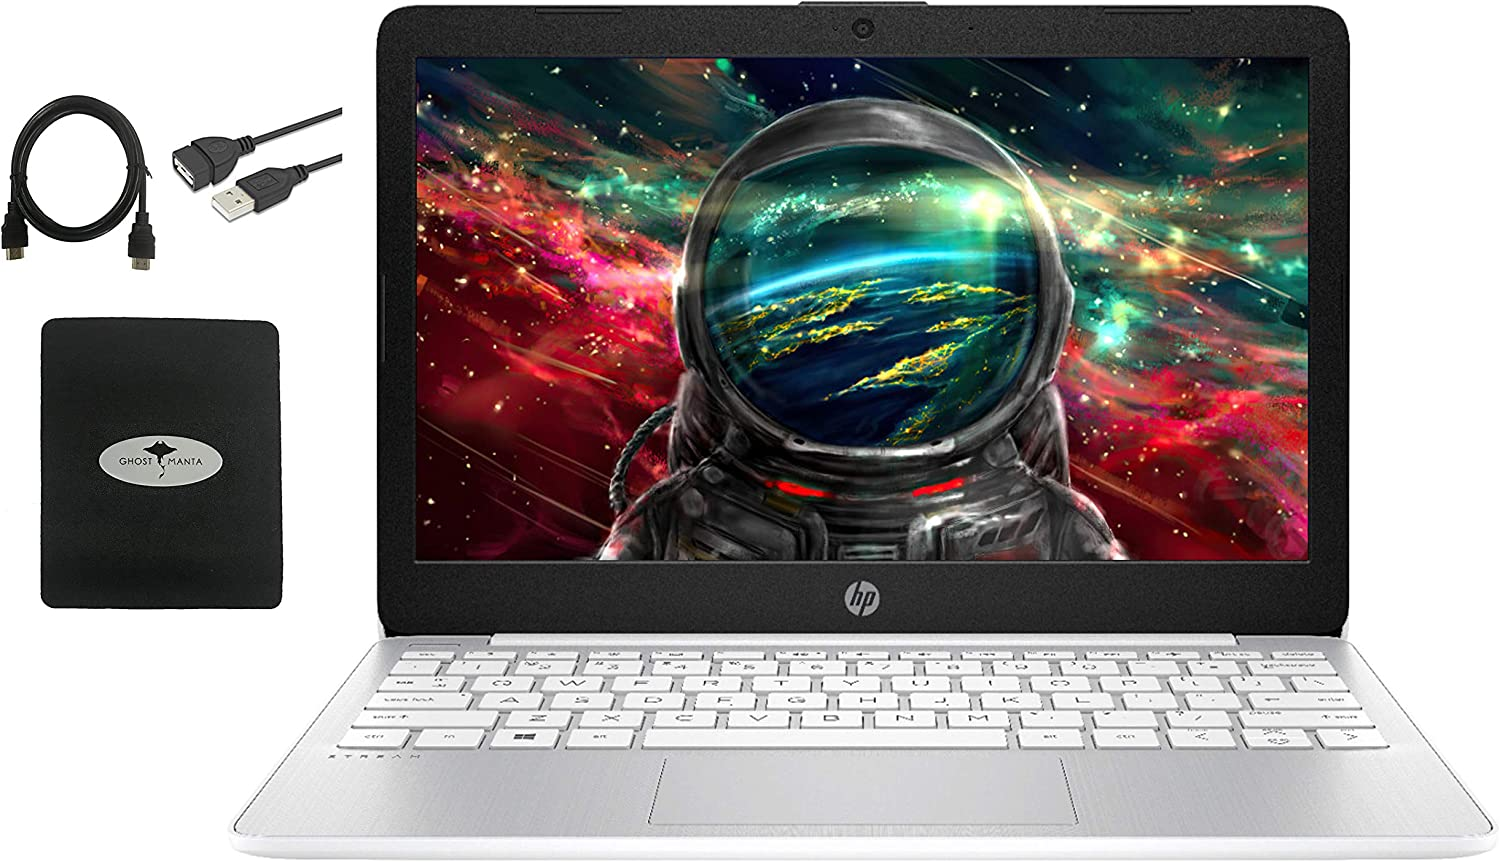 """2020 HP Stream 11.6"""" HD Laptop for Student and Home use, Intel Celeron N4000 (up to 2.6GHz), 4GB Memory, 64GB Storage, Webcam, WiFi, Bluetooth, Wireless-AC, USB Type-A&C, HDMI, w/GM Accessories"""